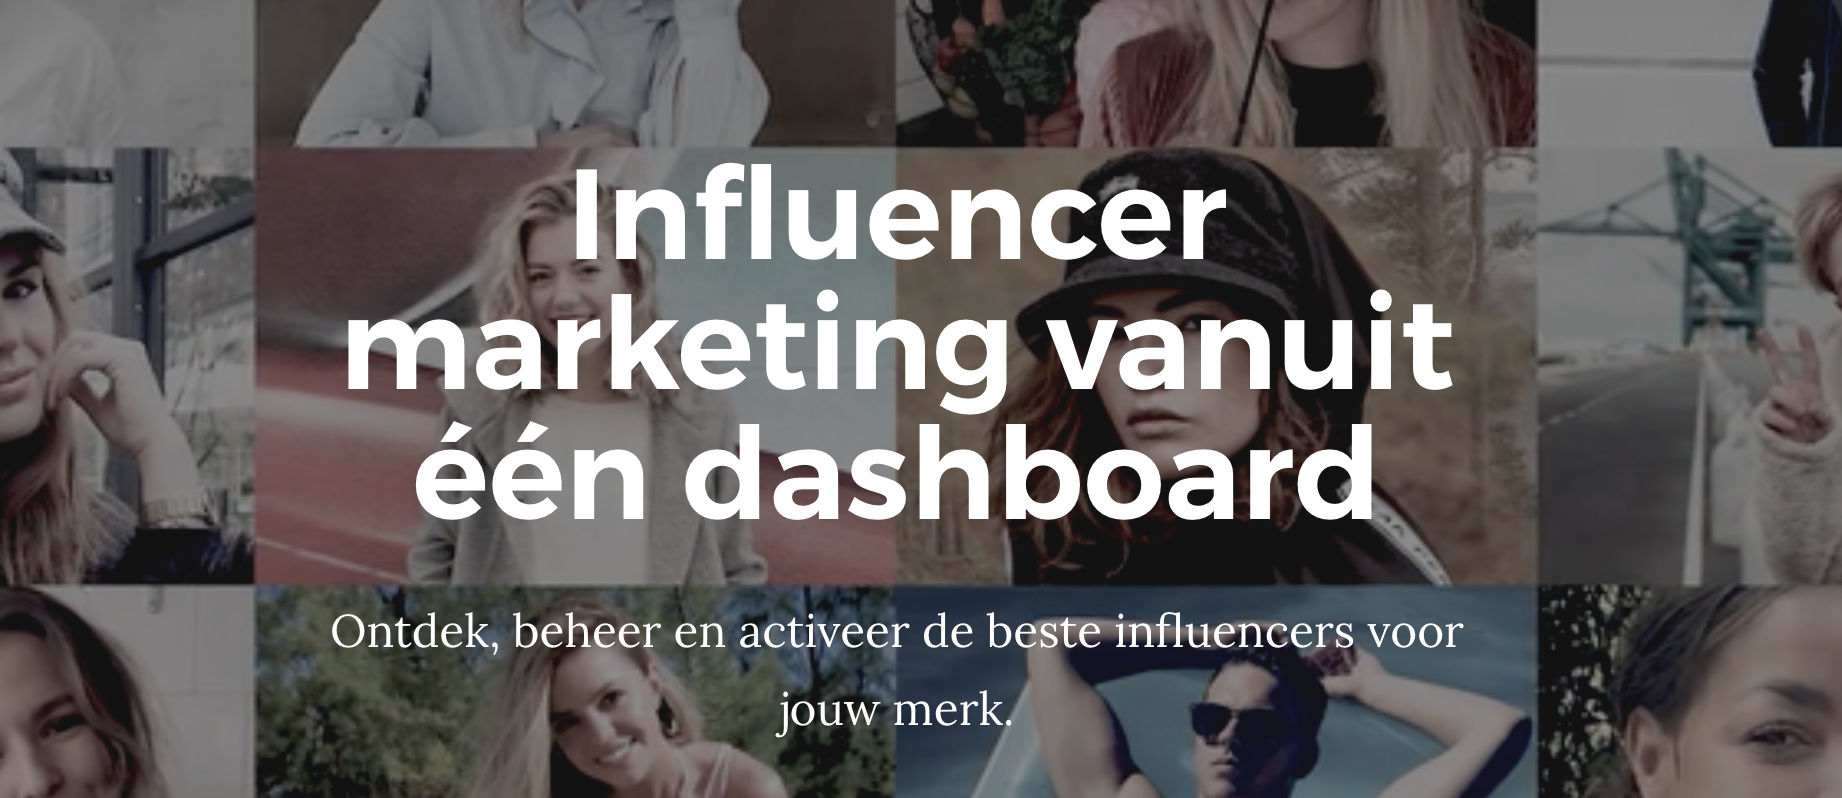 AI-technologie voor influencer marketing Join beschikbaar als white label